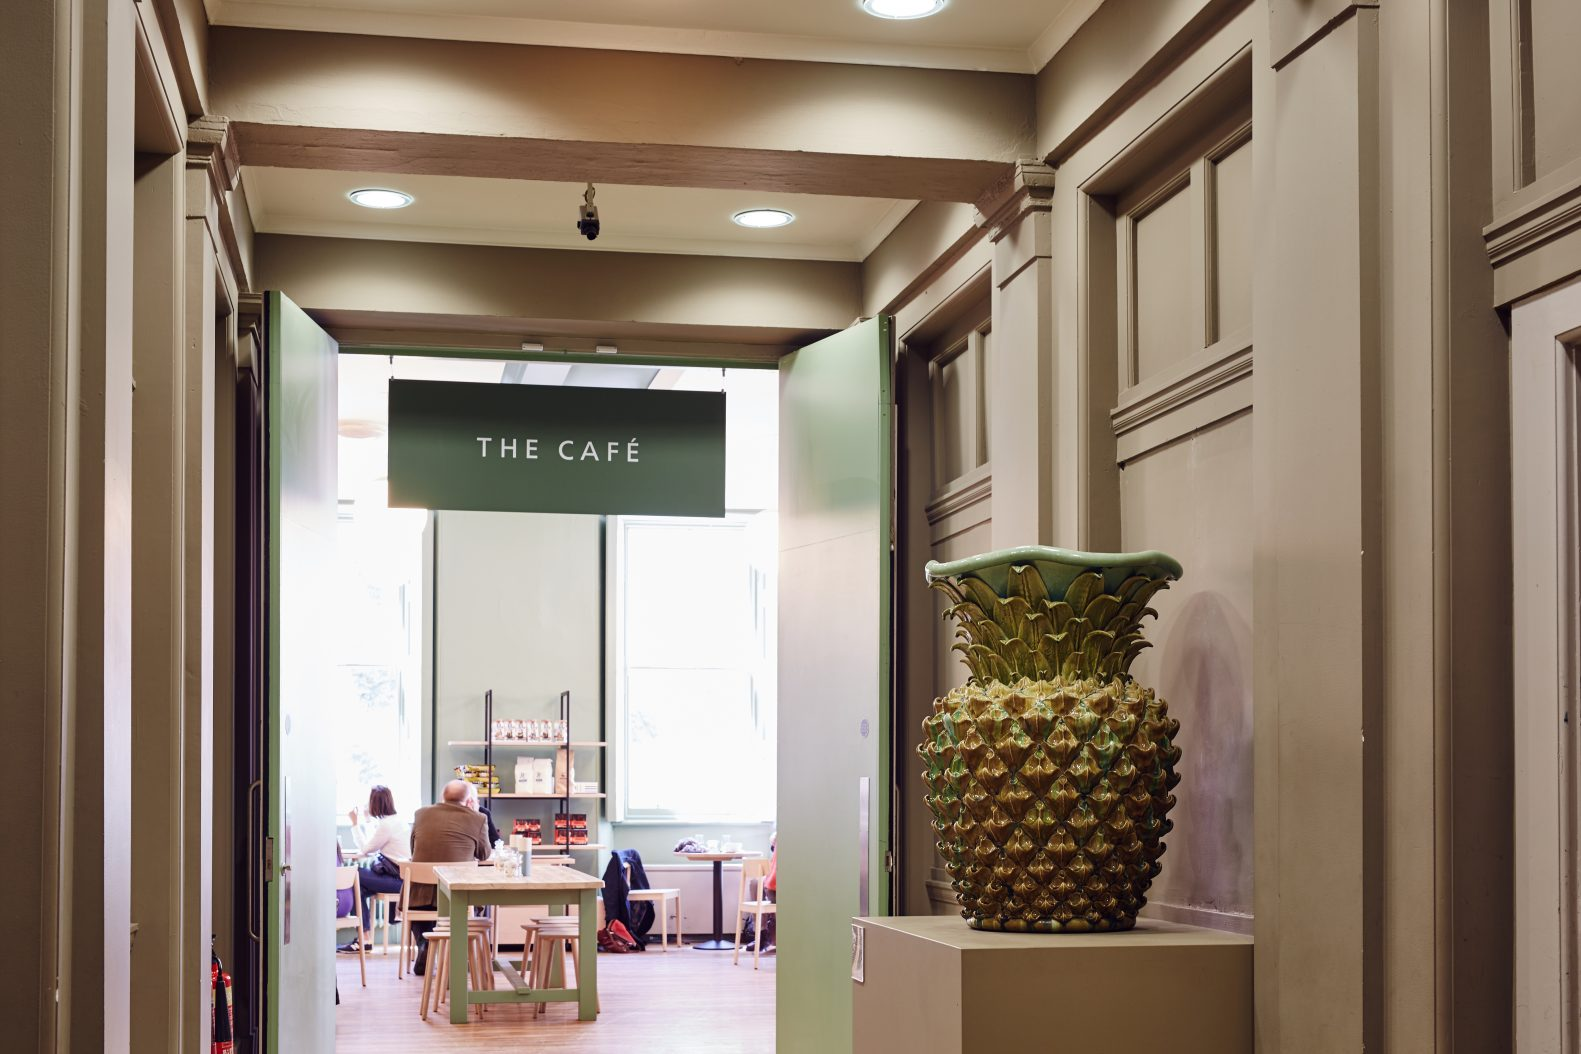 Manchester Art Gallery Cafe Entrance